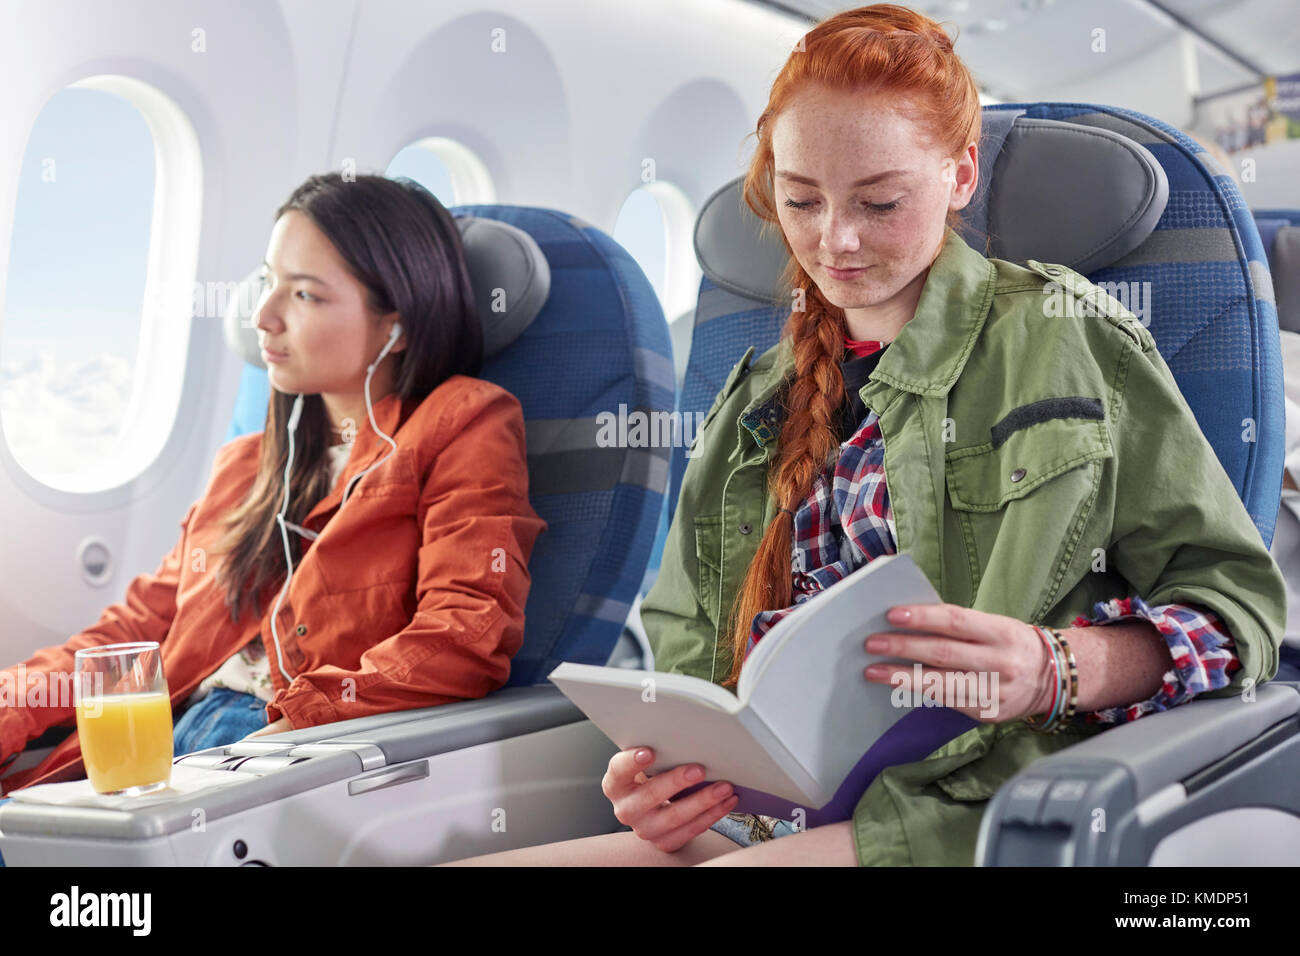 Young woman reading book on airplane - Stock Image